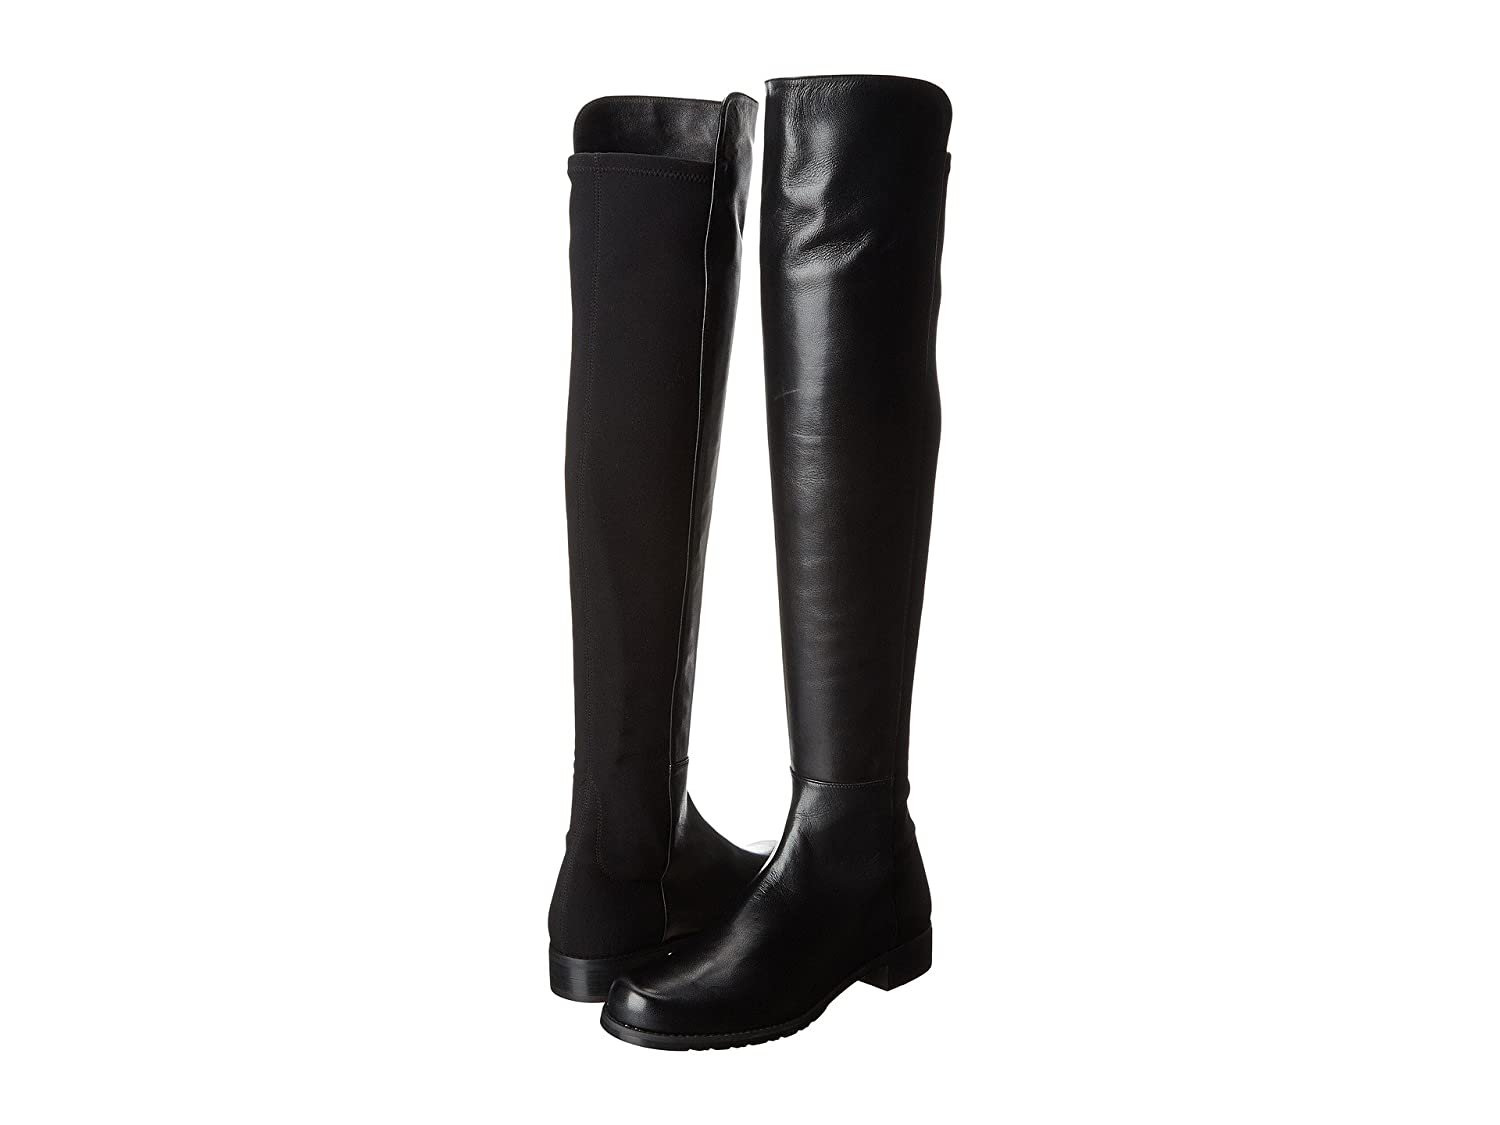 Stuart Weitzman Women's 5050 Over-the-Knee Boot B001O5CR4C 10 W US|Black Nappa